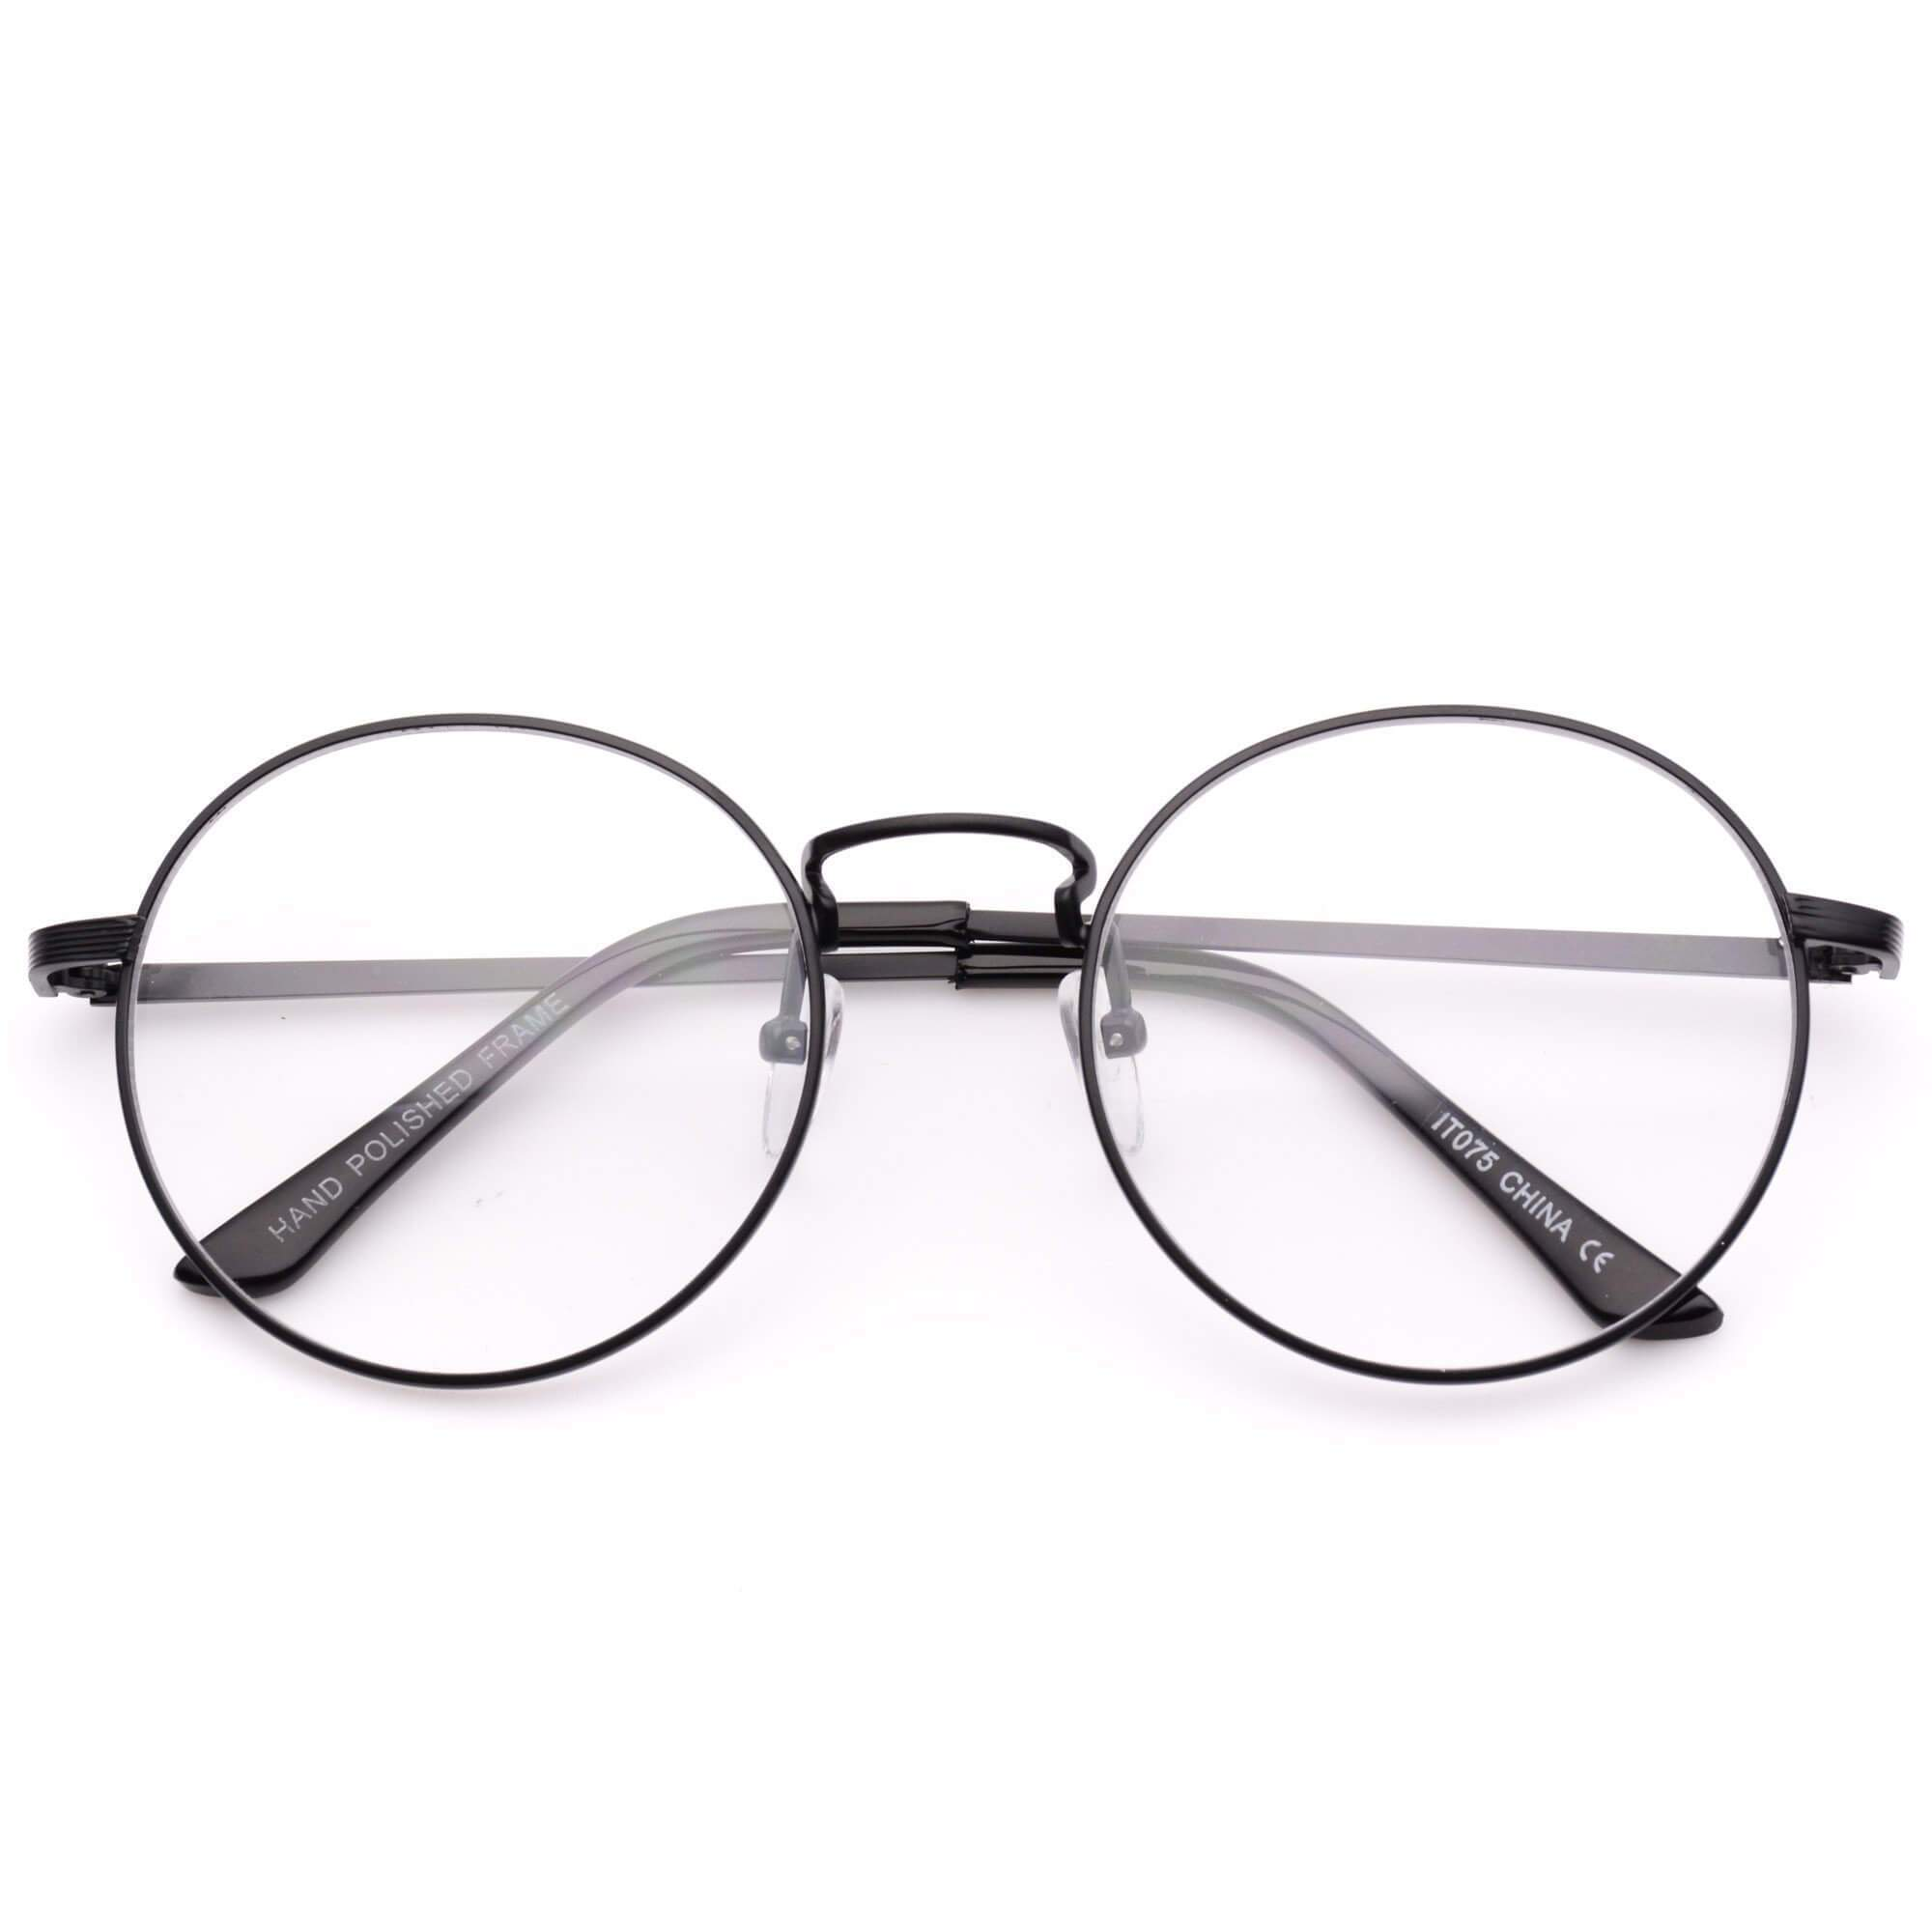 1a8435639b14 Blaine Round Metal Clear Glasses - Trendy Hipster Round Frame Clear ...